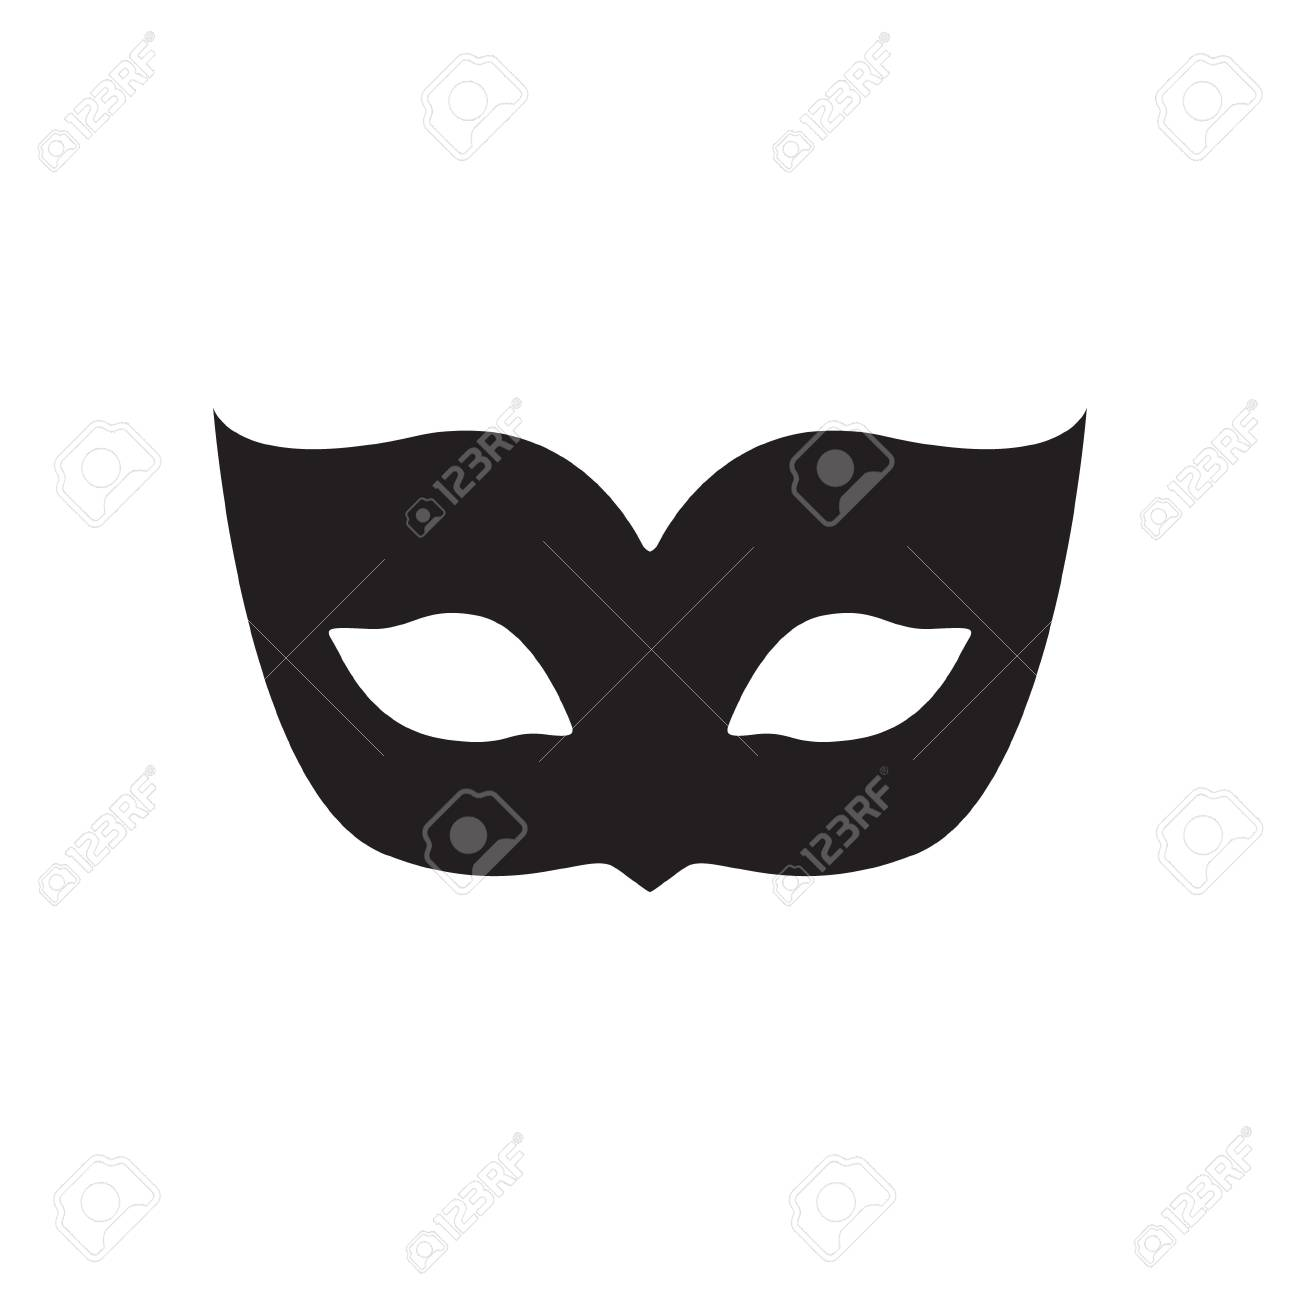 blank carnival mask icon template illustration party masquerade